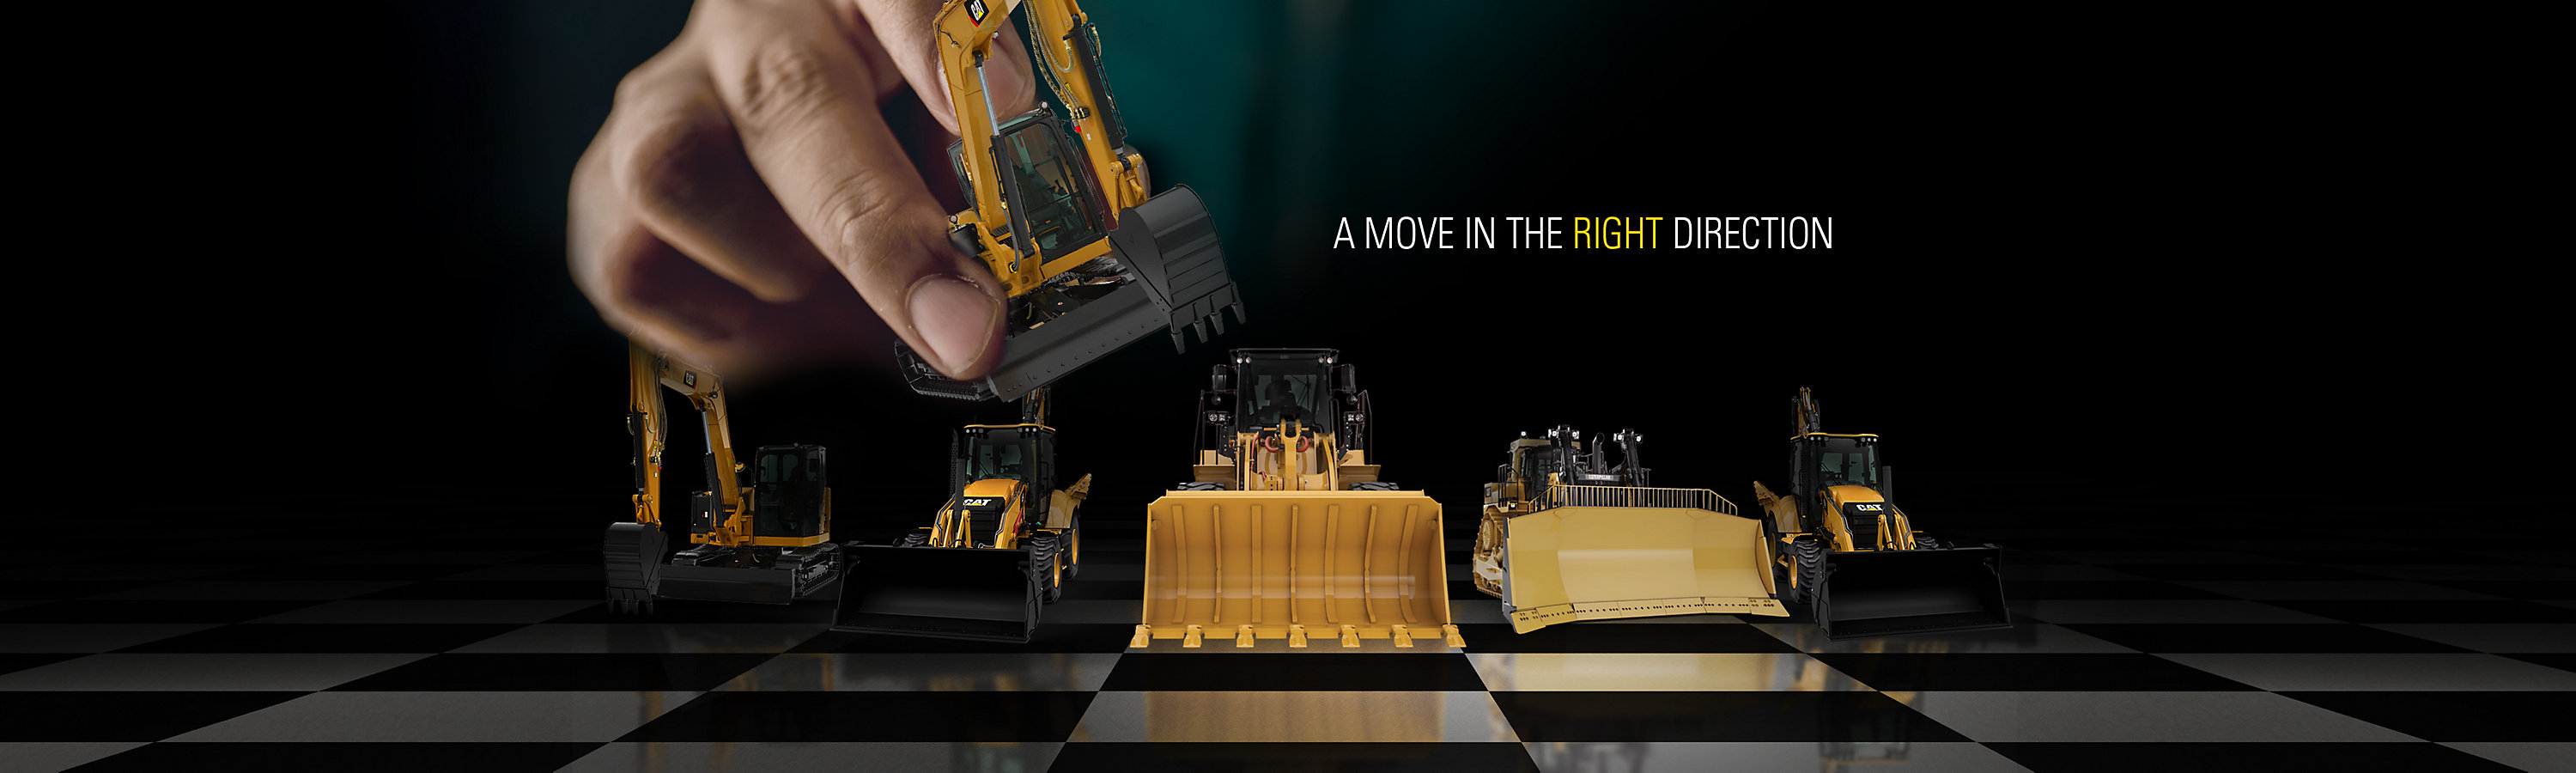 Ready To Make Your Move?